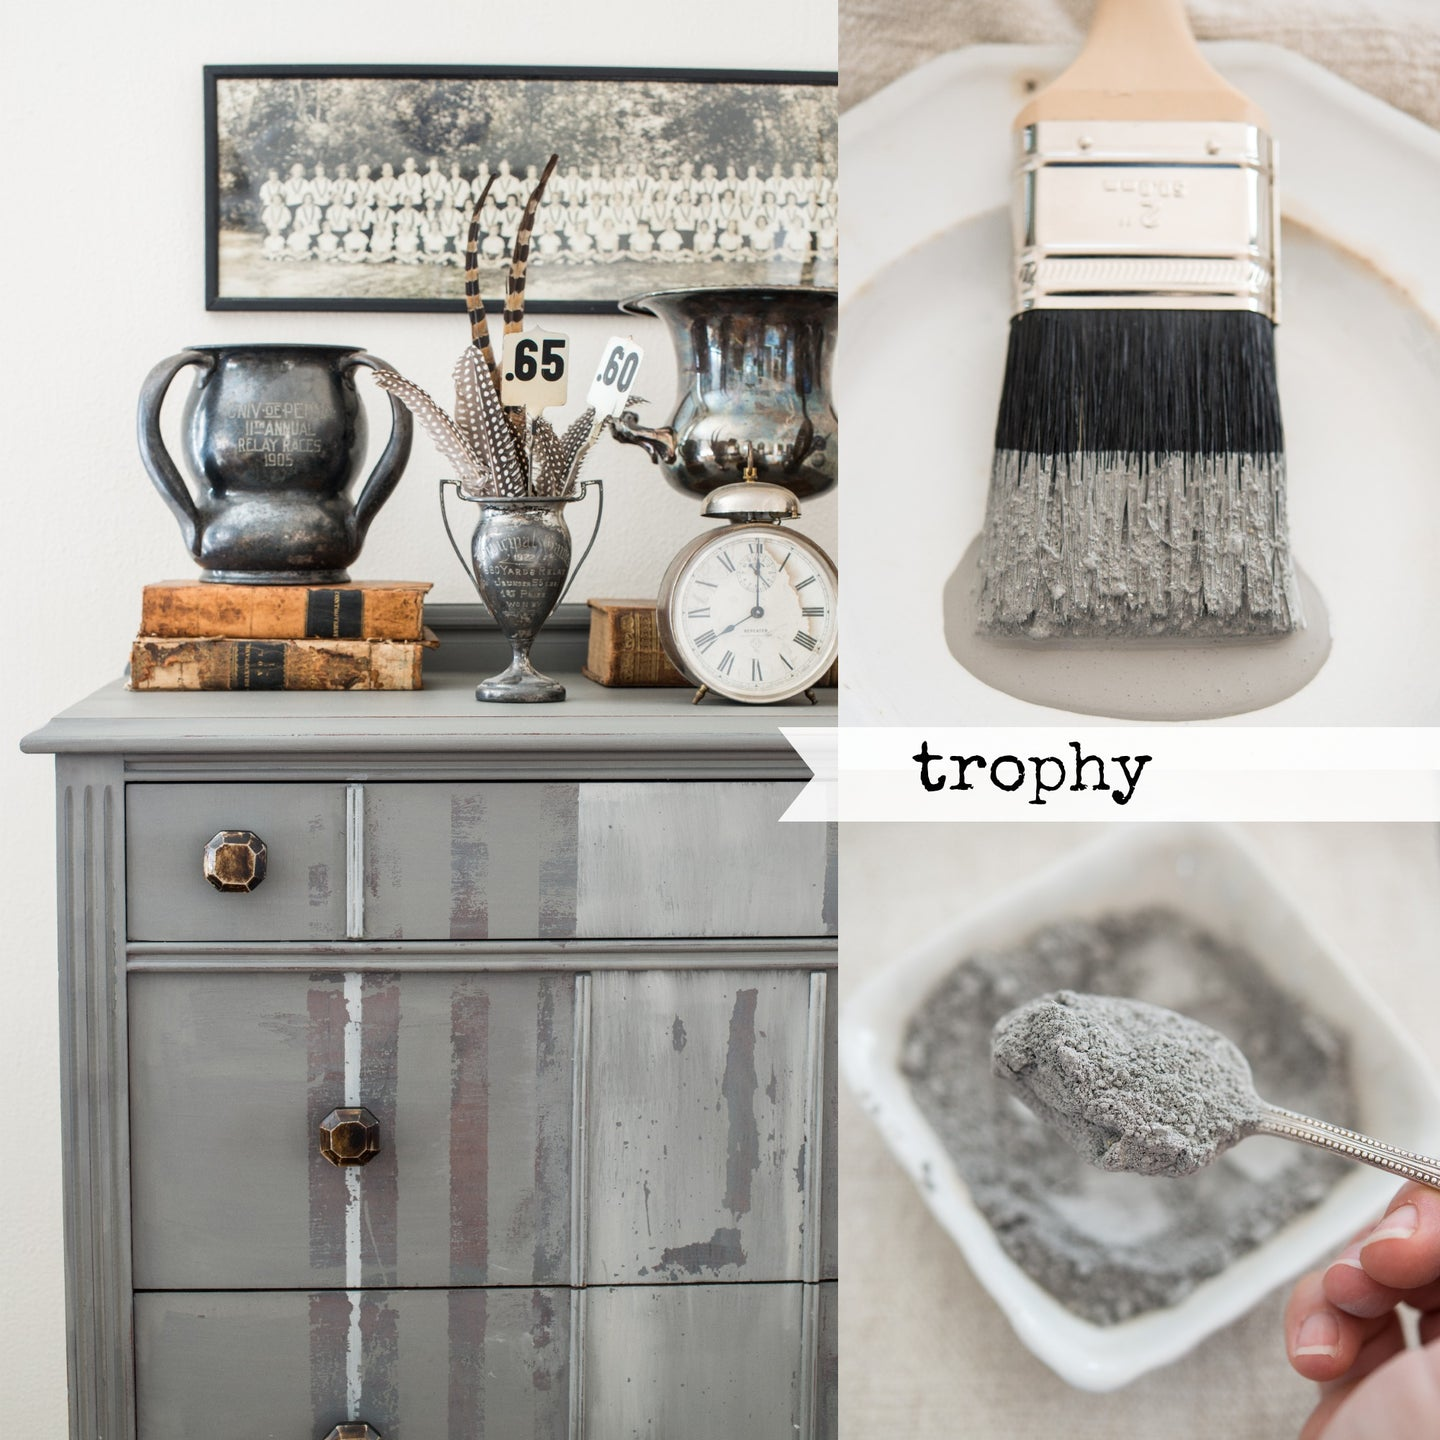 Trophy - Miss Mustard Seed Milk Paint 230g